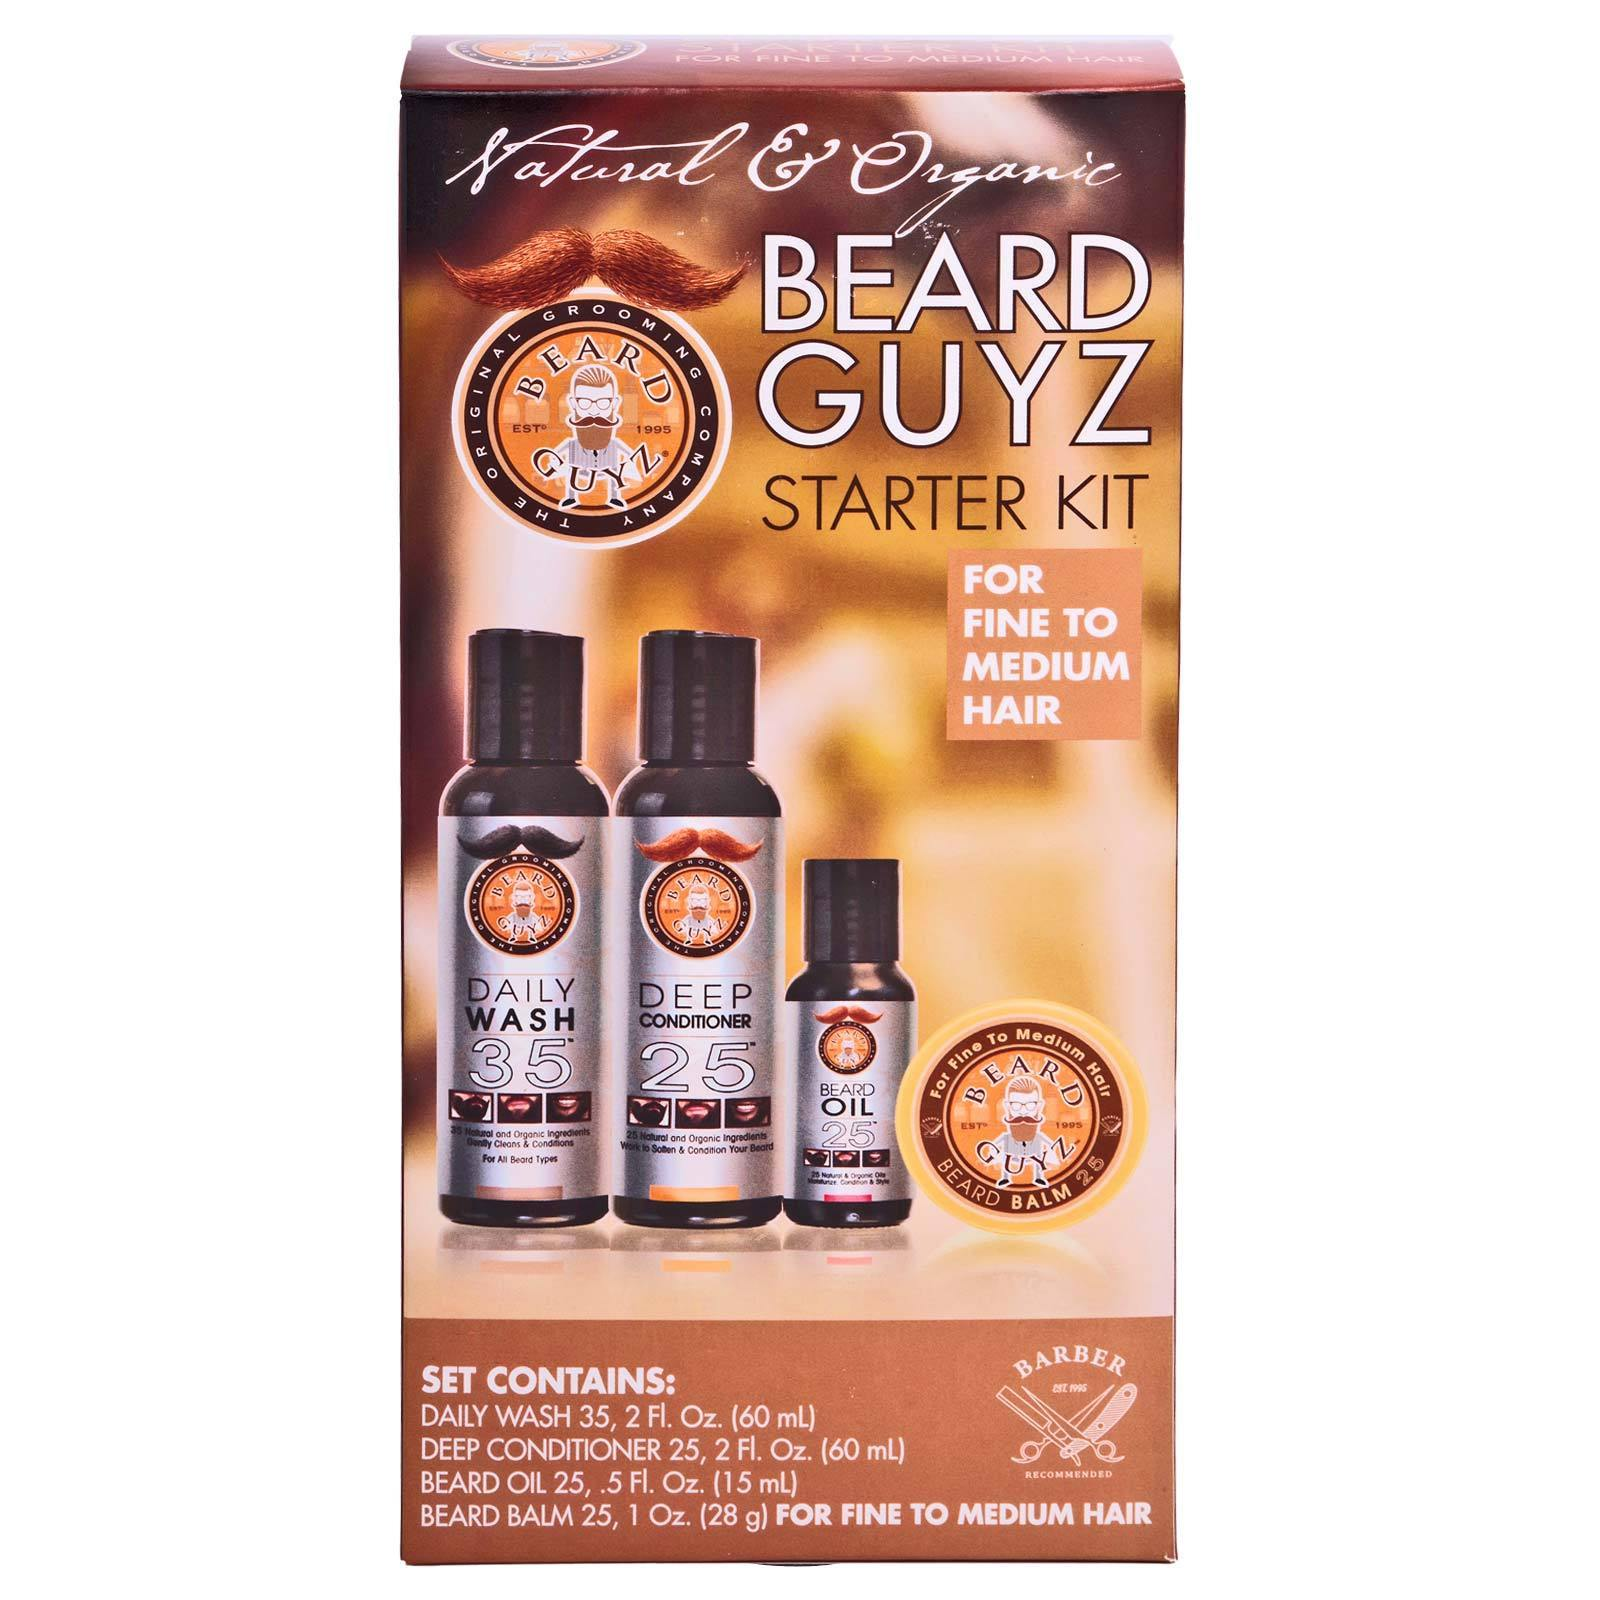 BEARD GUYZ STARTER SET FINE/MED, Wash, Conditioner, Oil, Balm  (12/cs)